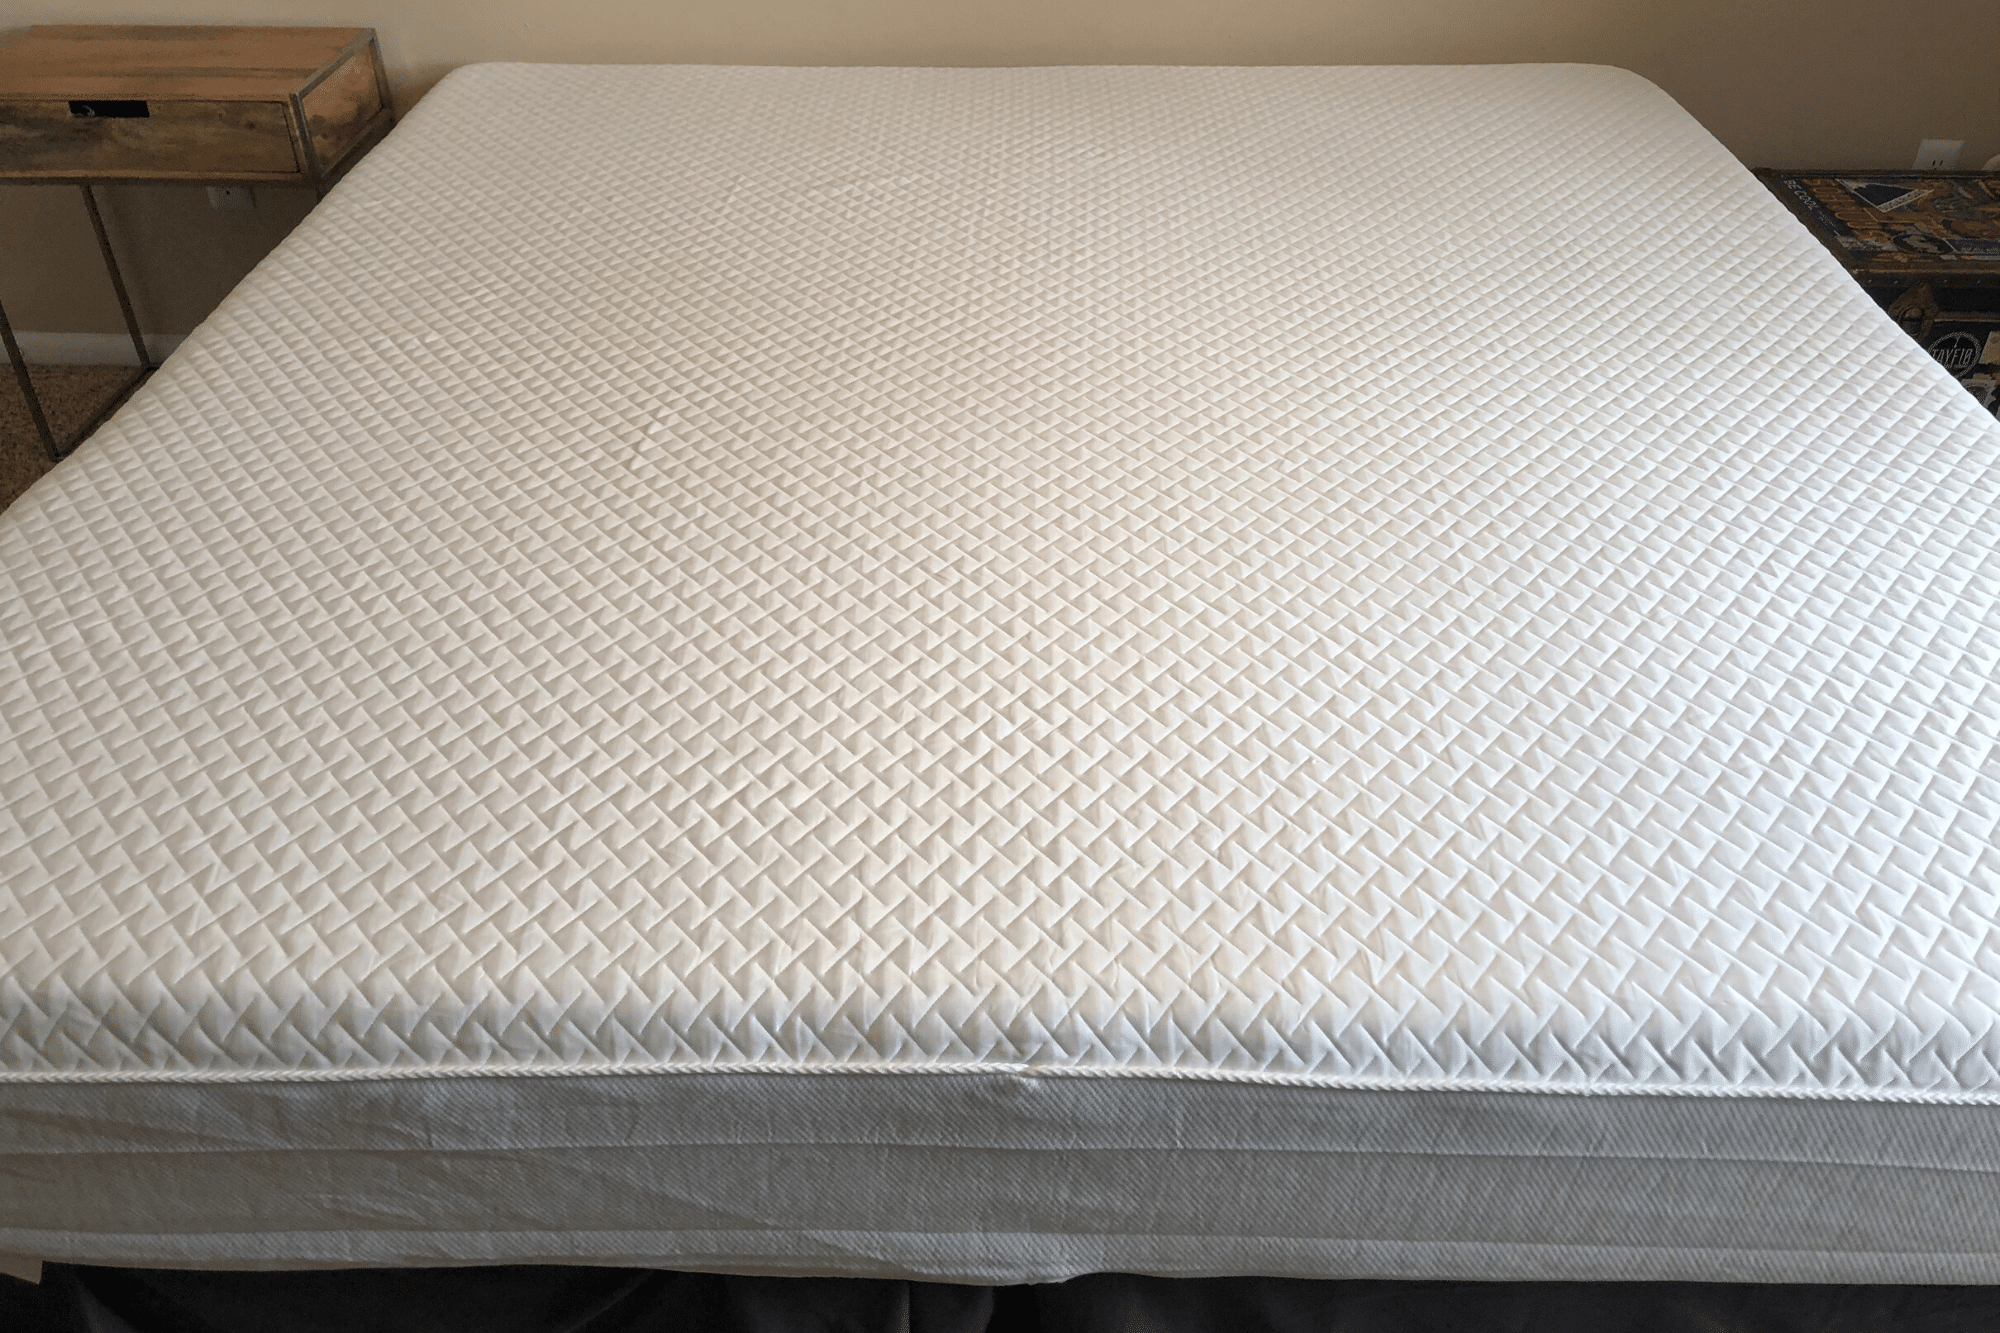 Okioki Mattress Review 2020 Is It Really Soft Yet Supportive Mattresses Reviews Mattress Mattress Companies